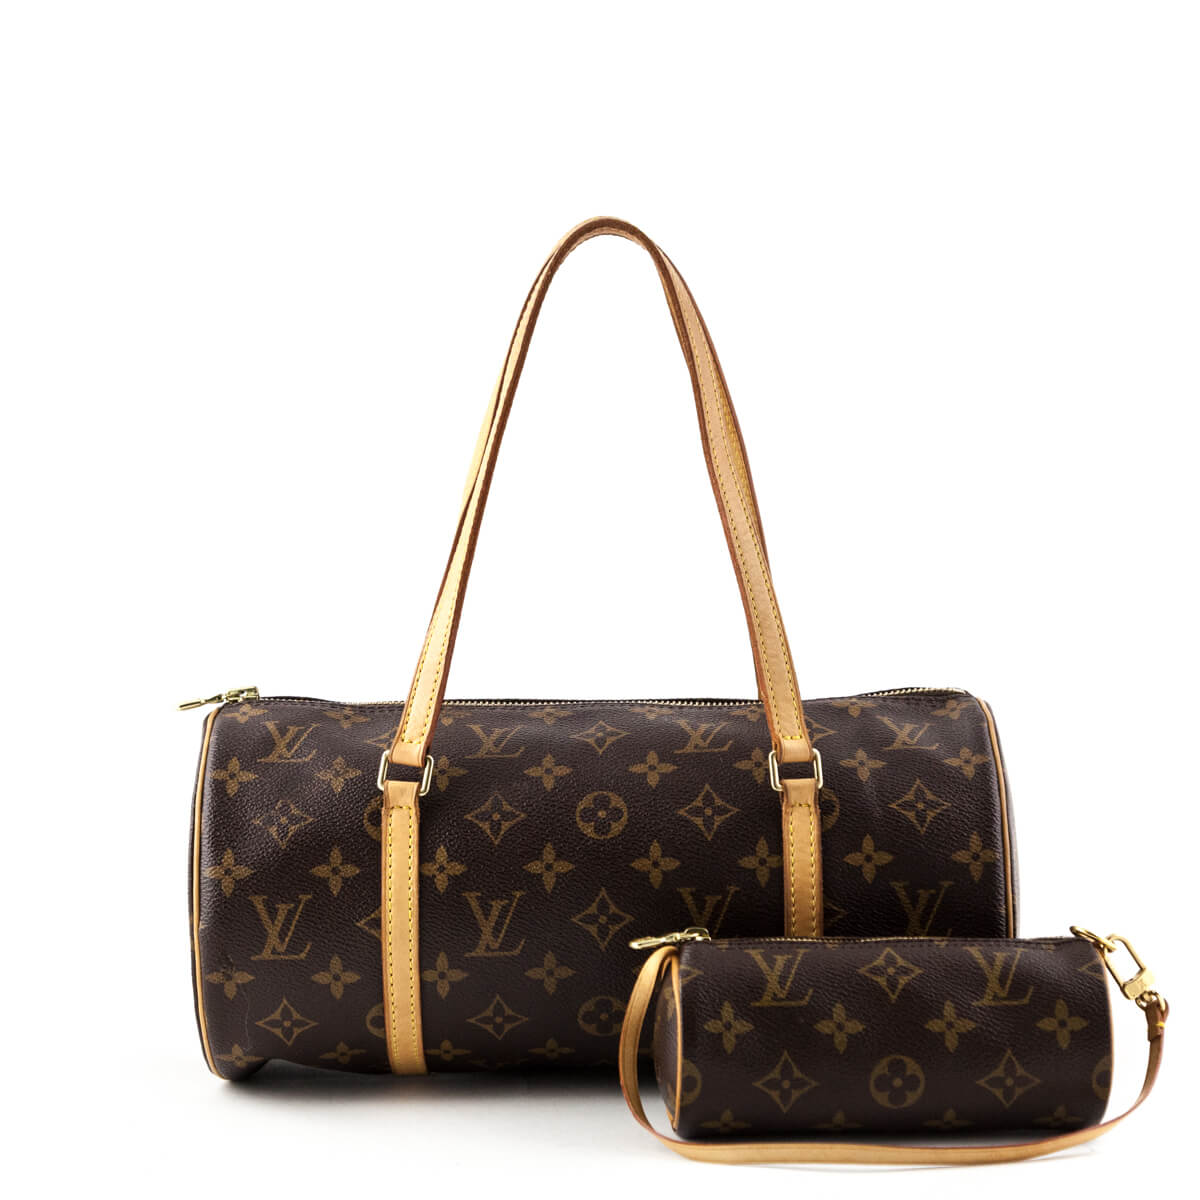 43b8a9e460df Louis Vuitton Monogram Papillon 30 with Pouch - LOVE that BAG - Preowned  Authentic Designer Handbags ...